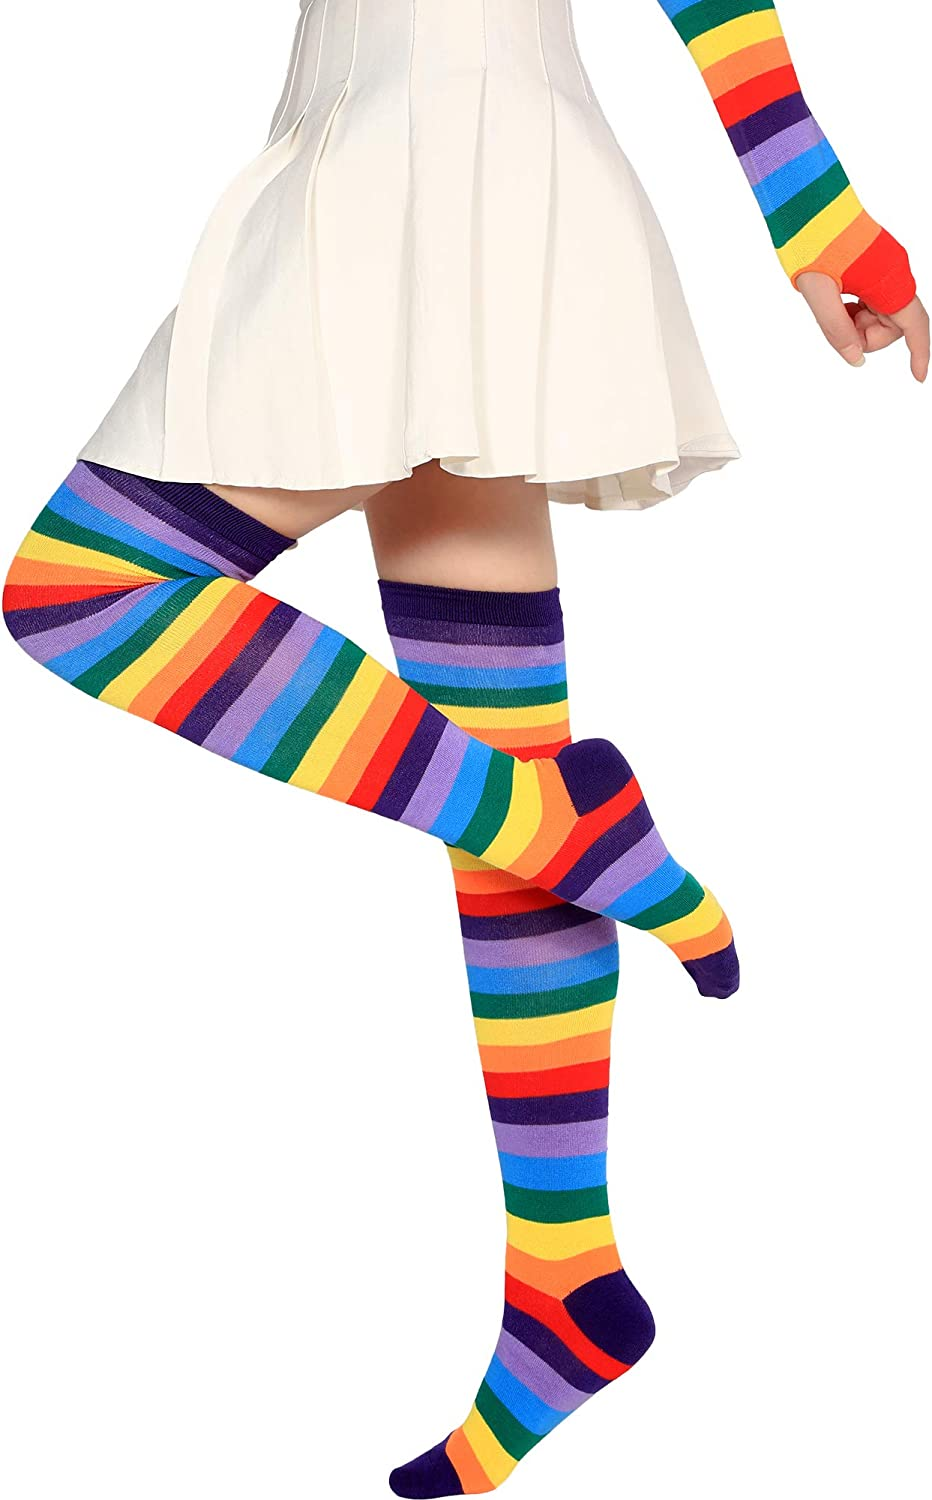 2 Set Women Long Striped Socks Arm Warmer Gloves Knee High Stockings for Christmas Cosplay Party Daily Wear